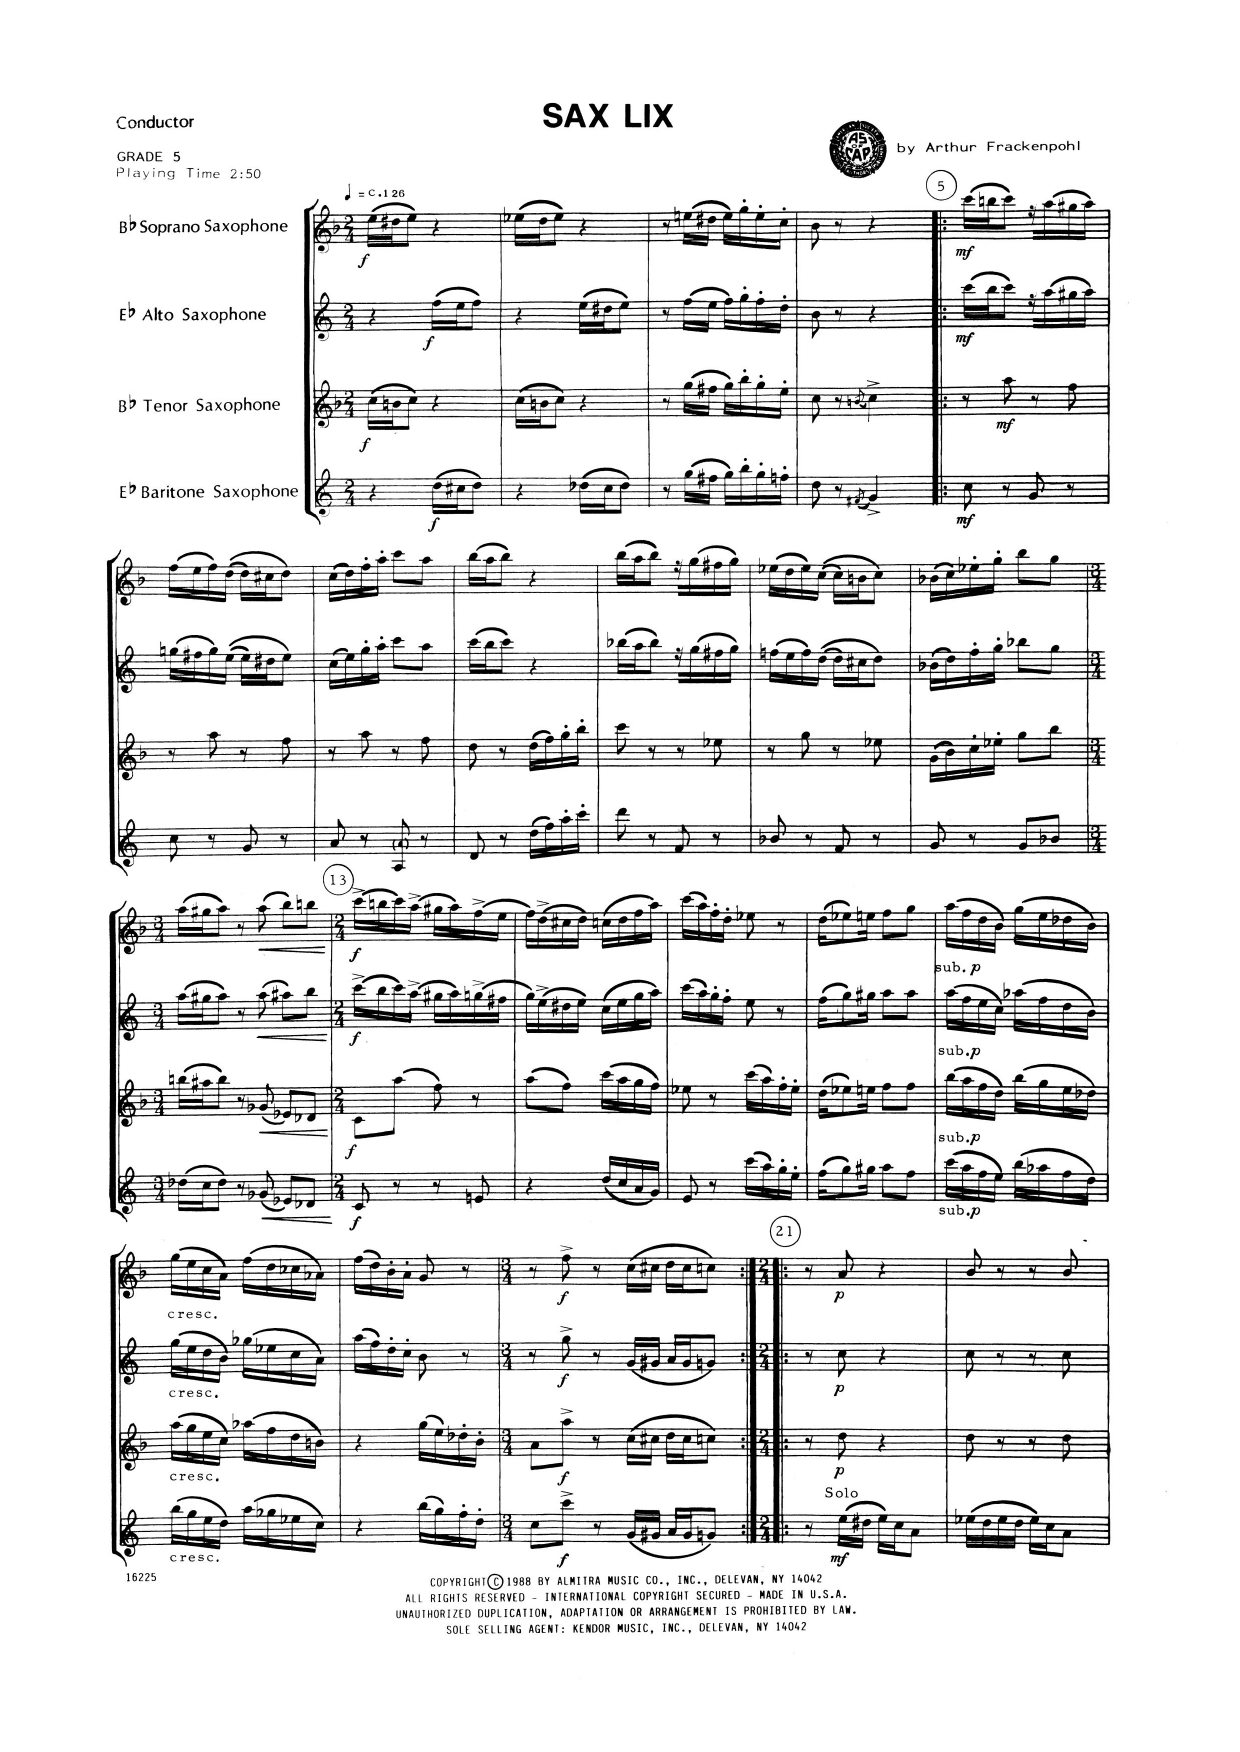 Sax Lix (COMPLETE) sheet music for saxophone quartet by Arthur Frackenpohl. Score Image Preview.